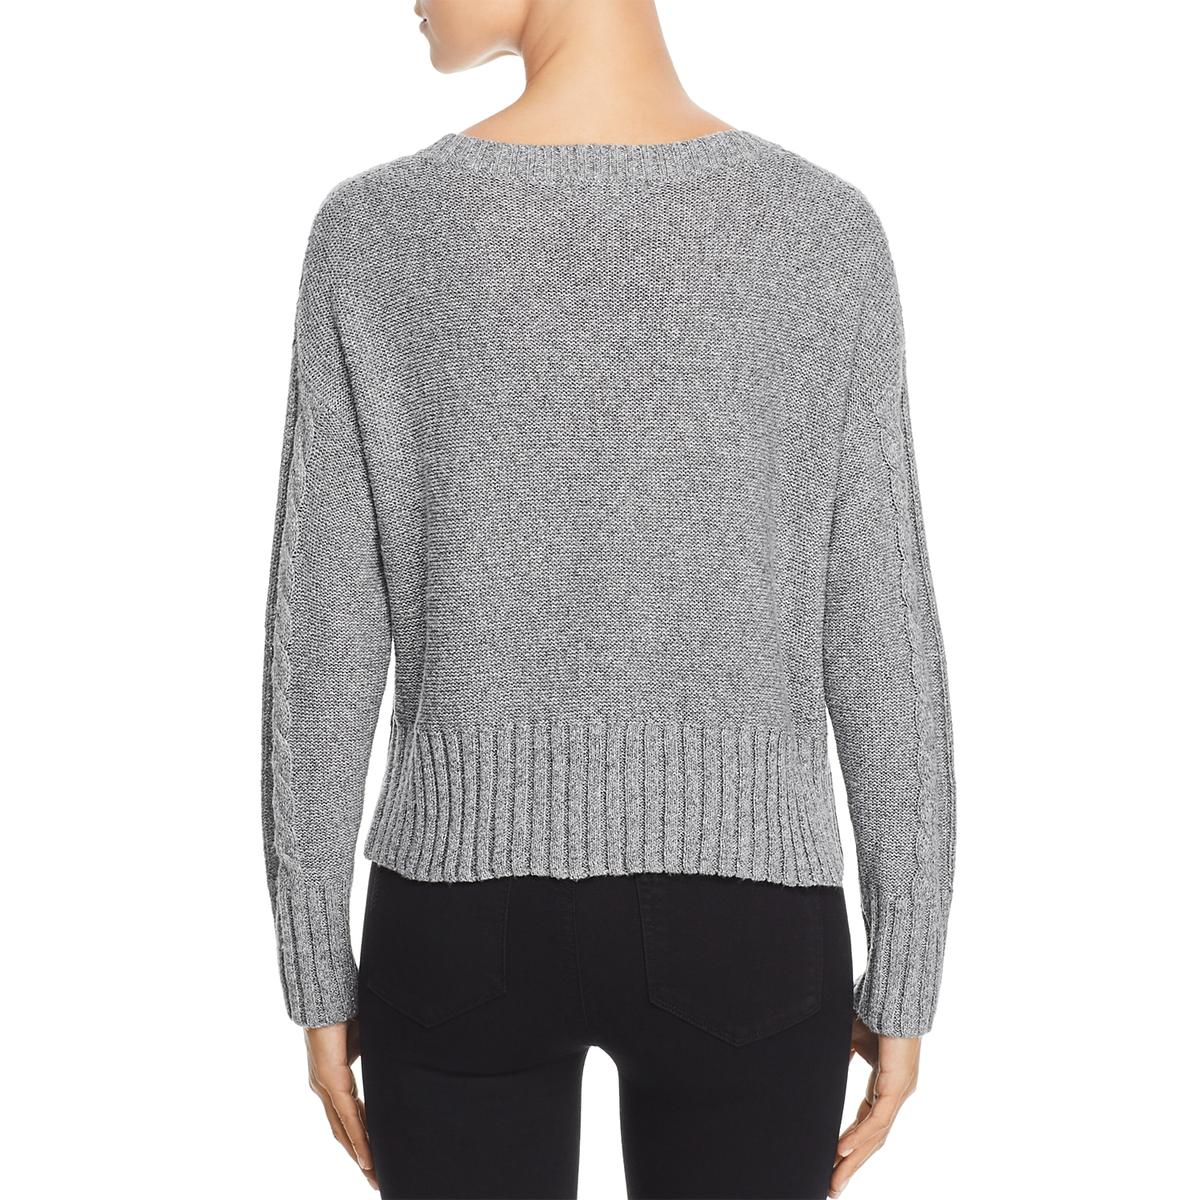 Design History Womens Textured Cable Knit Crew Neck ...